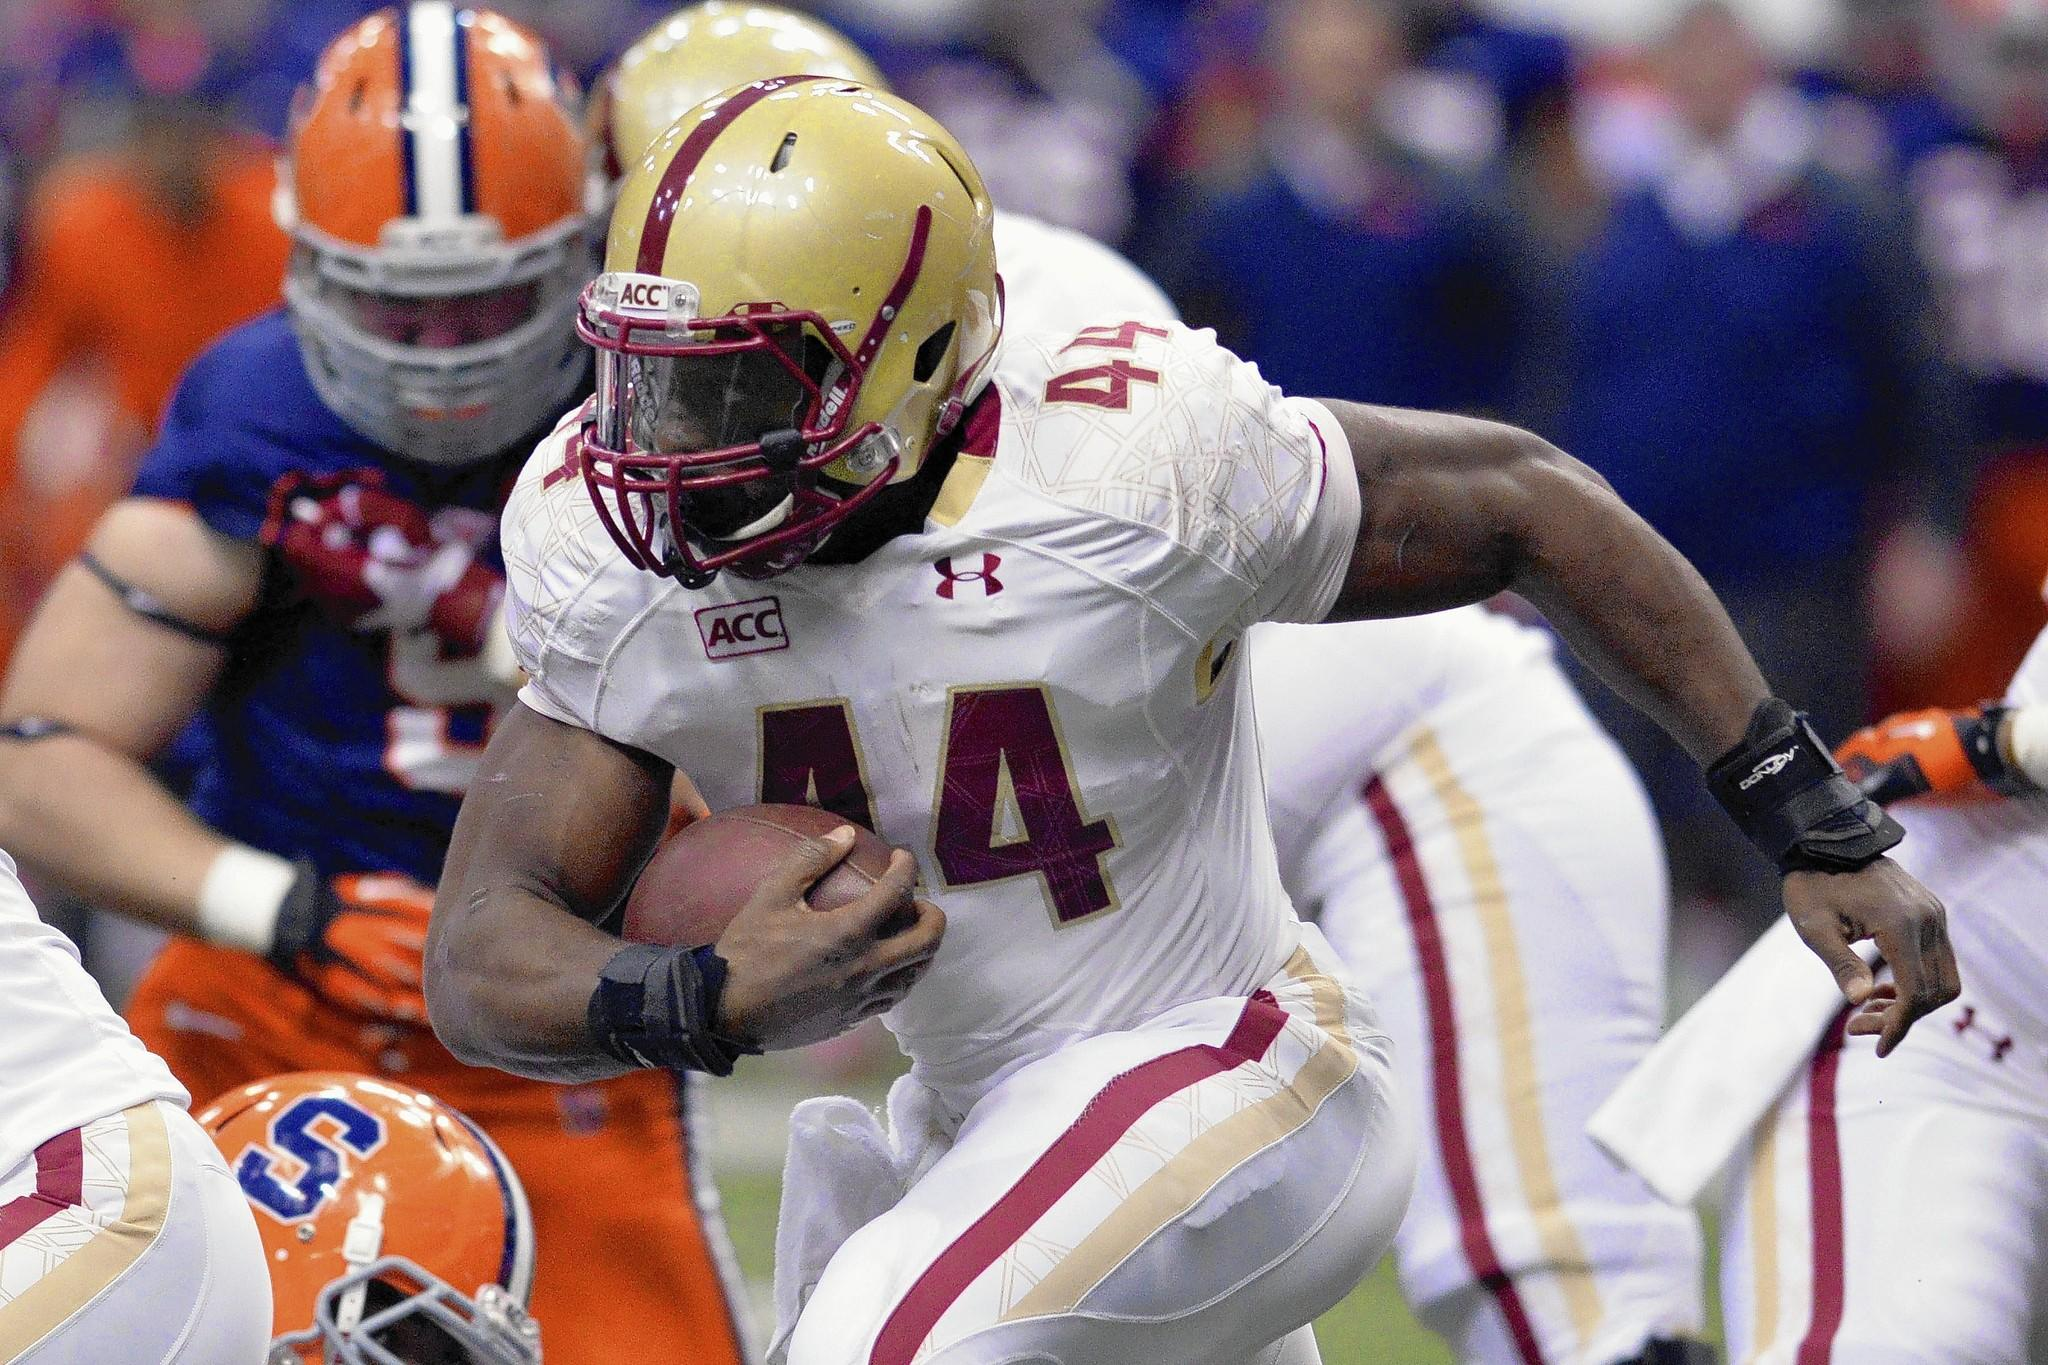 Nov 30, 2013; Syracuse, NY, USA; Boston College Eagles running back Andre Williams (44) runs behind the line of scrimmage during the first quarter of a game against the Syracuse Orange at the Carrier Dome.